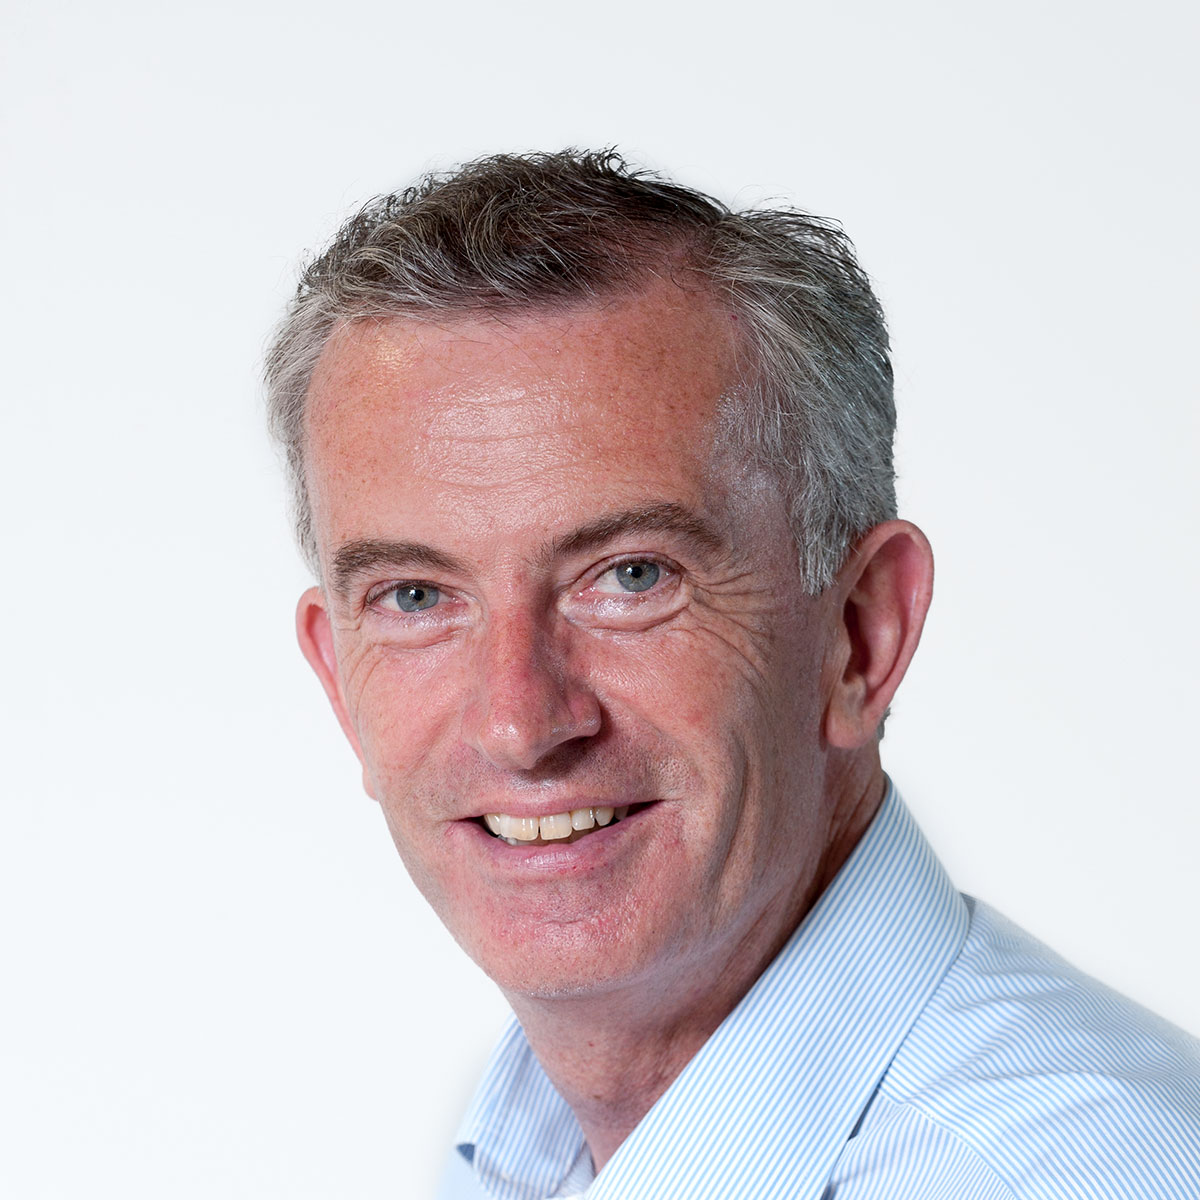 David Fitzsimons - DirectorTalk to David about: Circular economy, remanufacturing, international policy